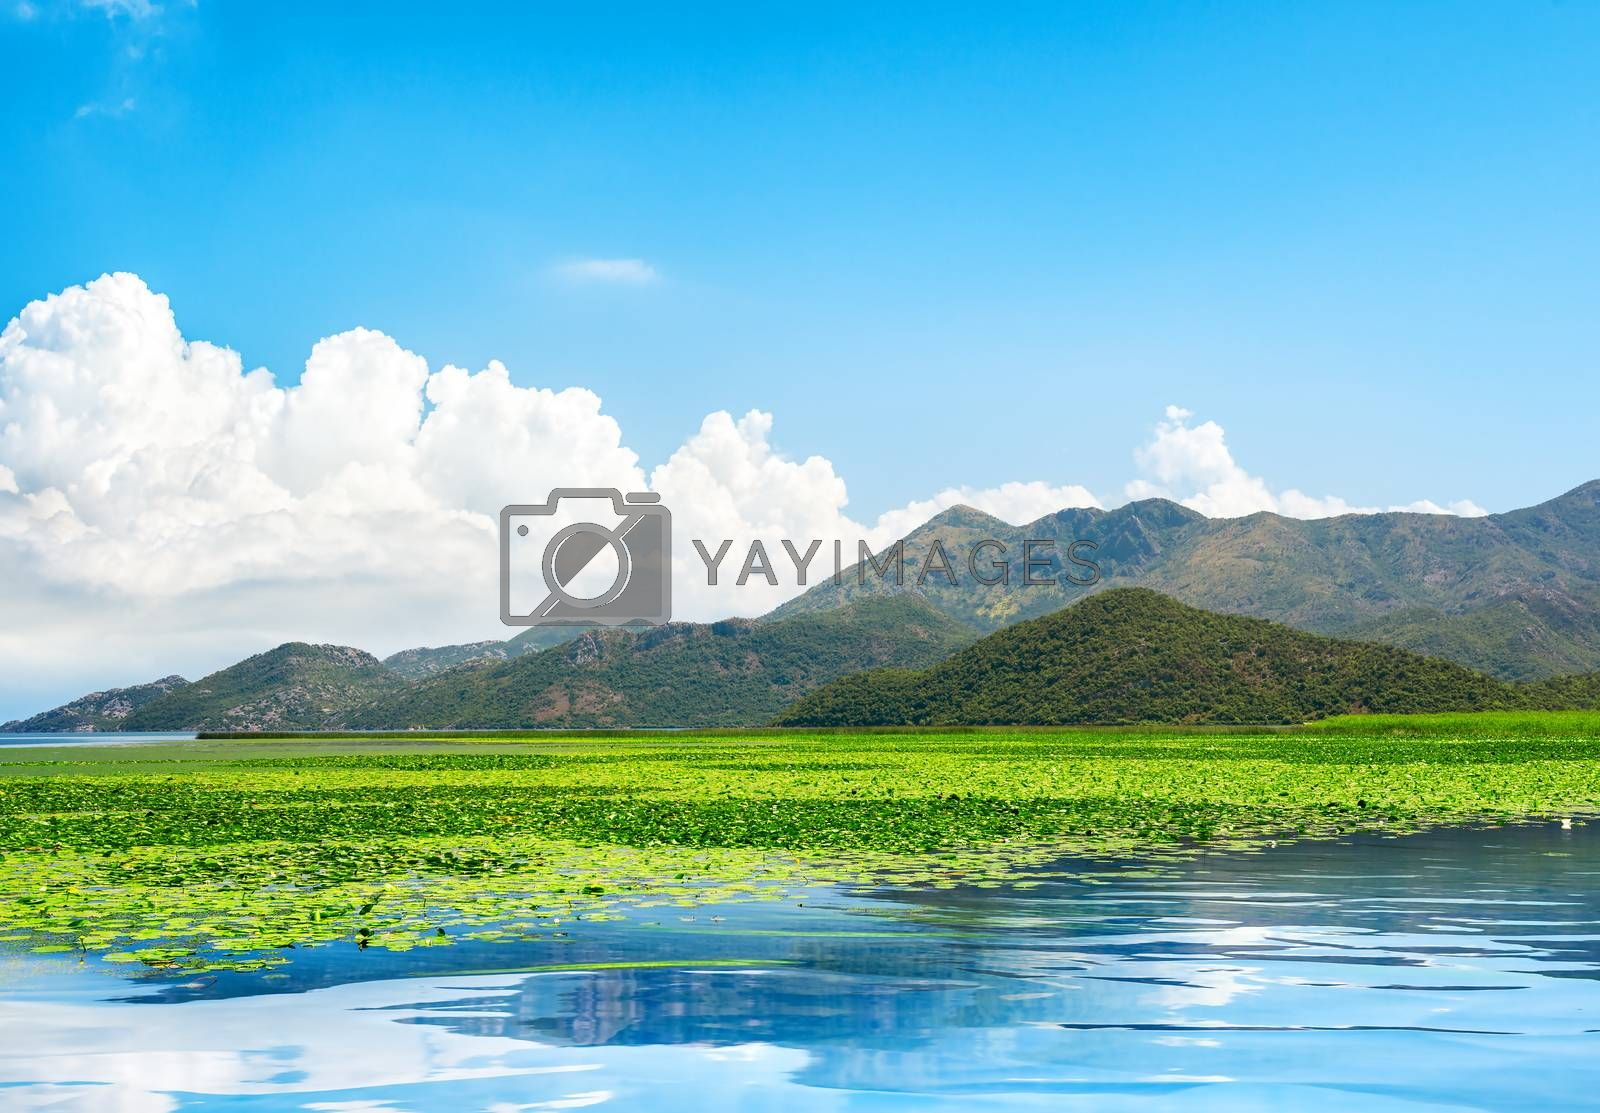 Skadar lake park. Lake surrounded by mountains. Montenegro